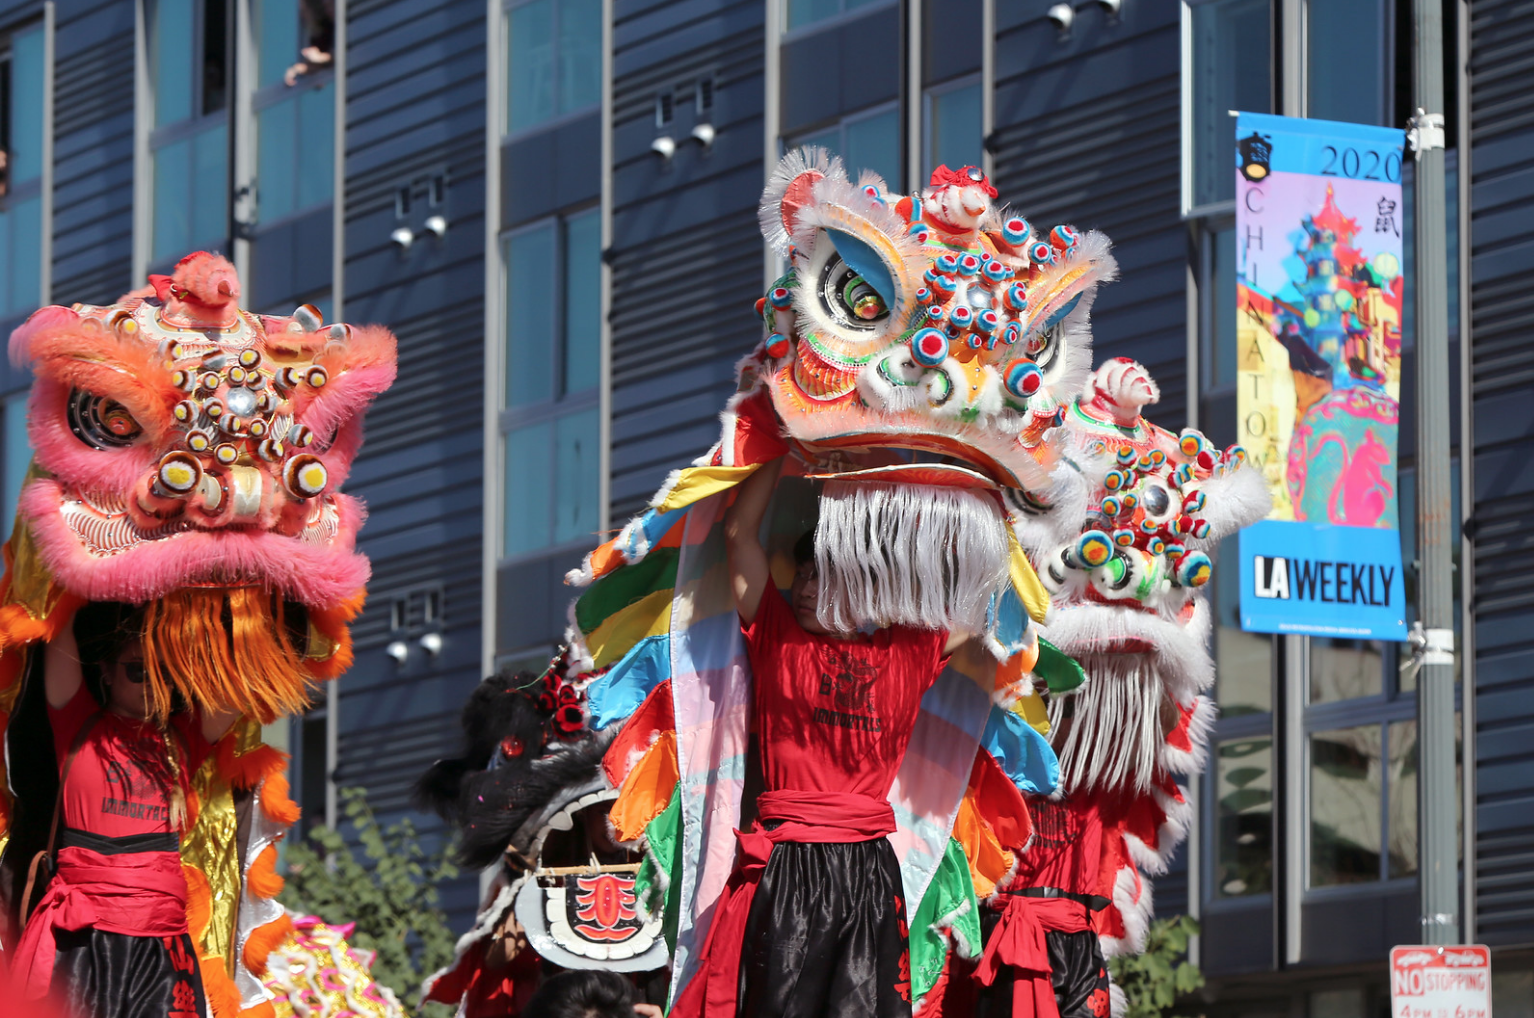 A group of dragon dancers perform a traditional Chinese dance at the Dragon Parade.